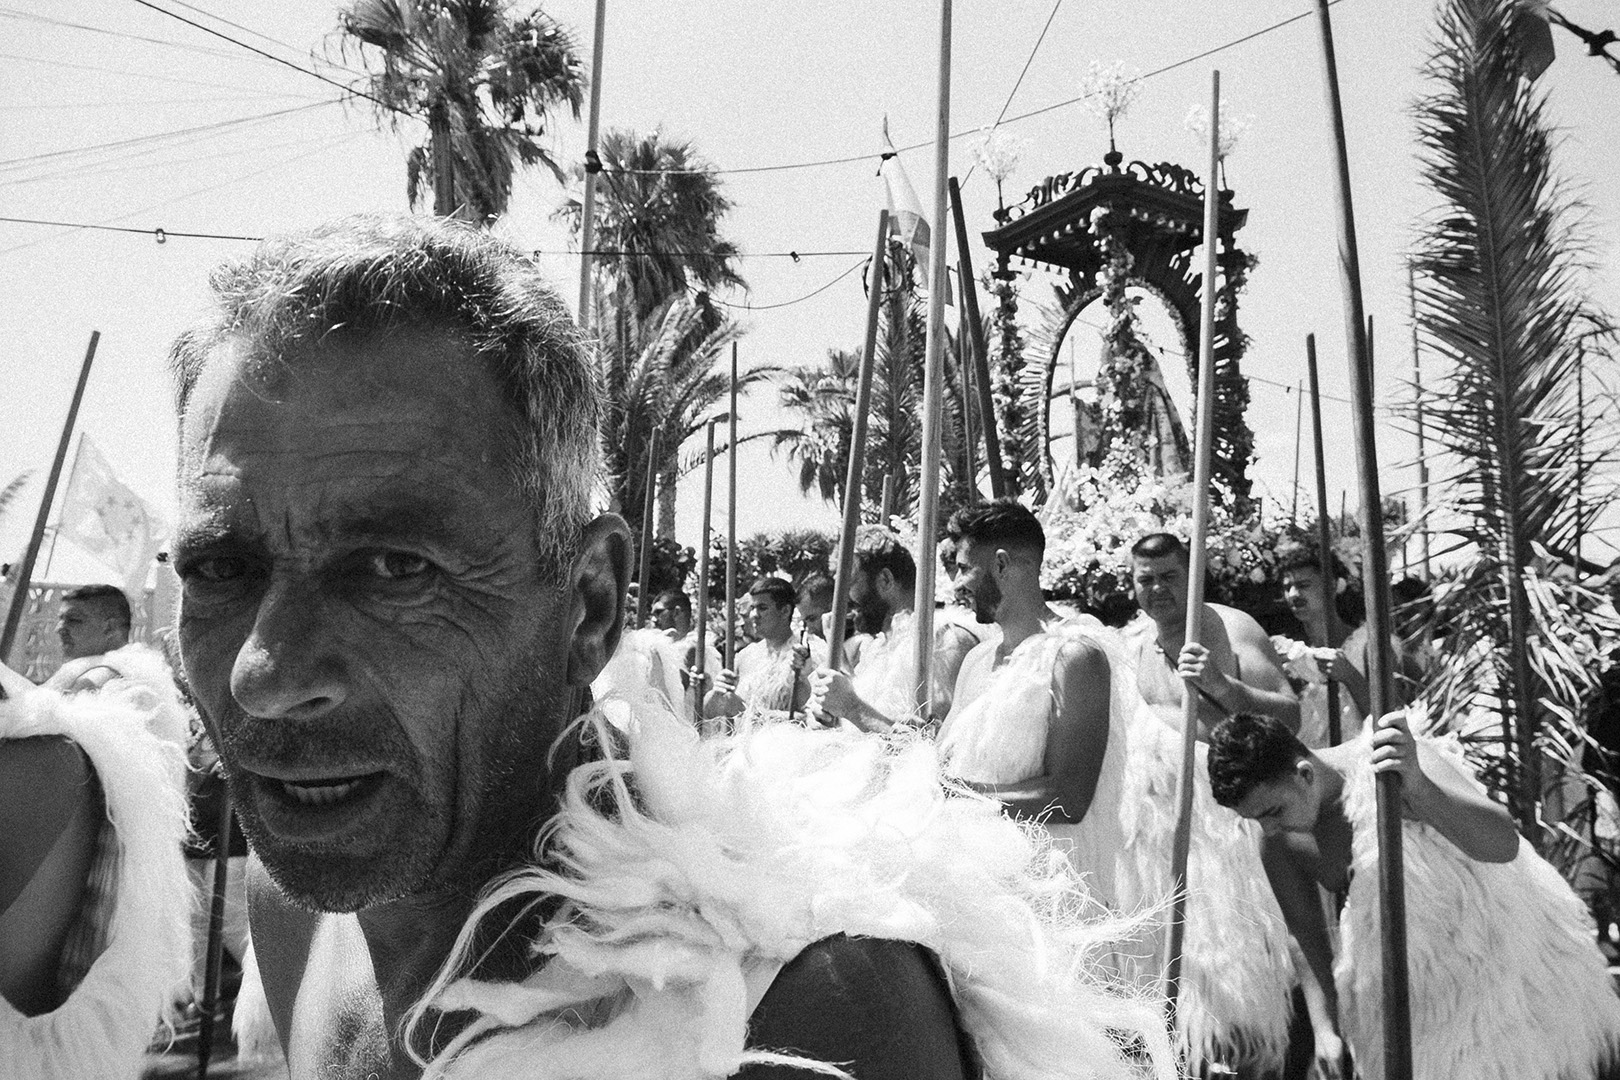 Romeria, Guimar - Socorro; Guanche stares carrying The Virgen